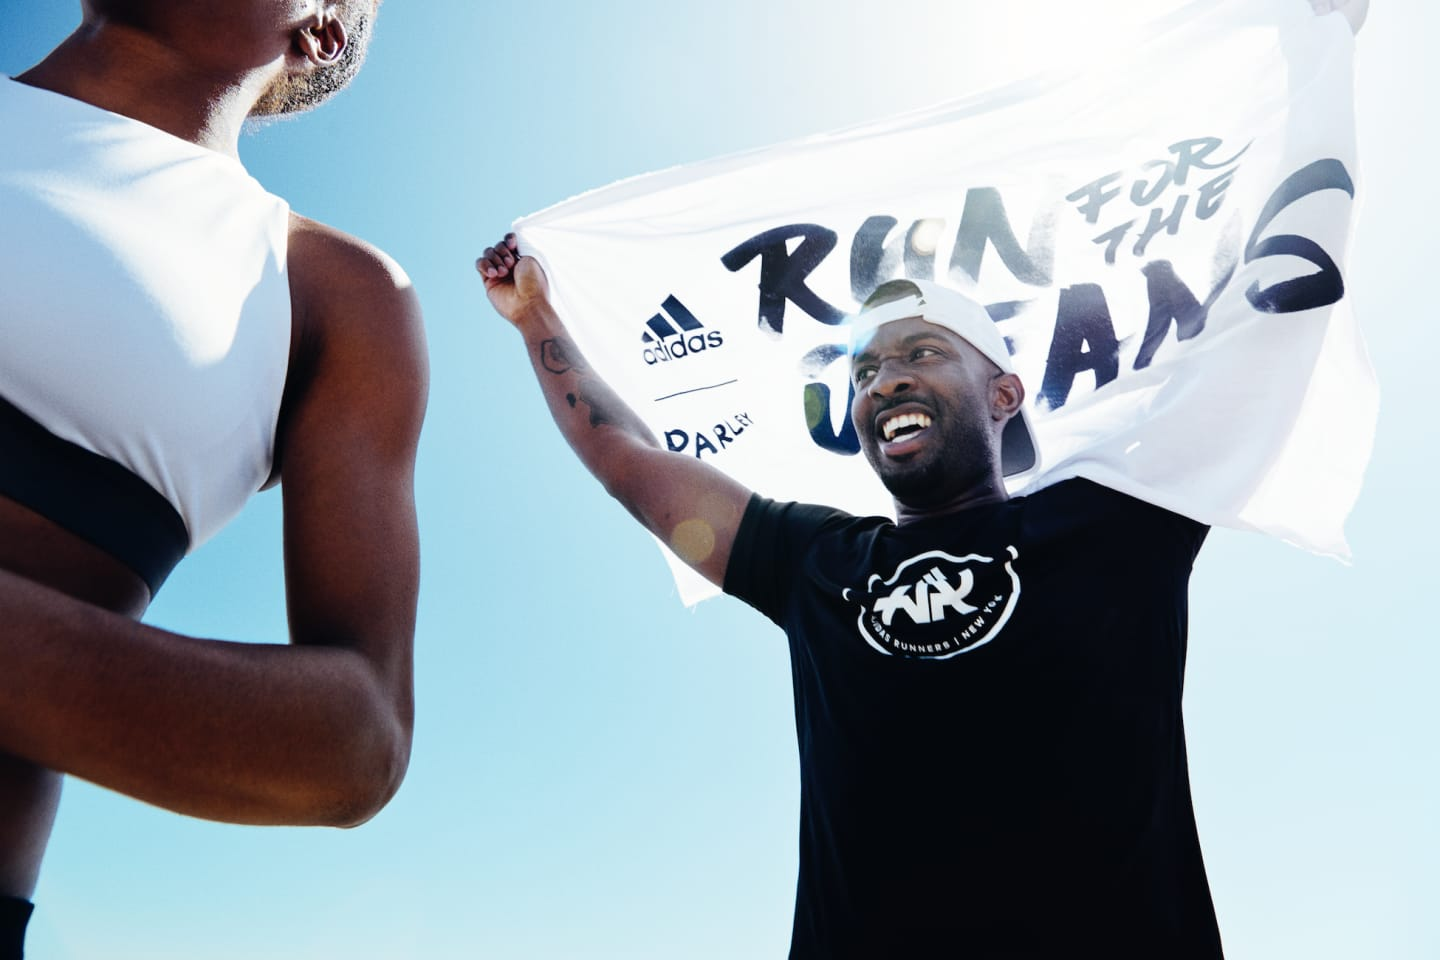 A man stands tall with a parley run for the oceans flag in the air. run, running, run for the oceans, oceans, happy, achievement